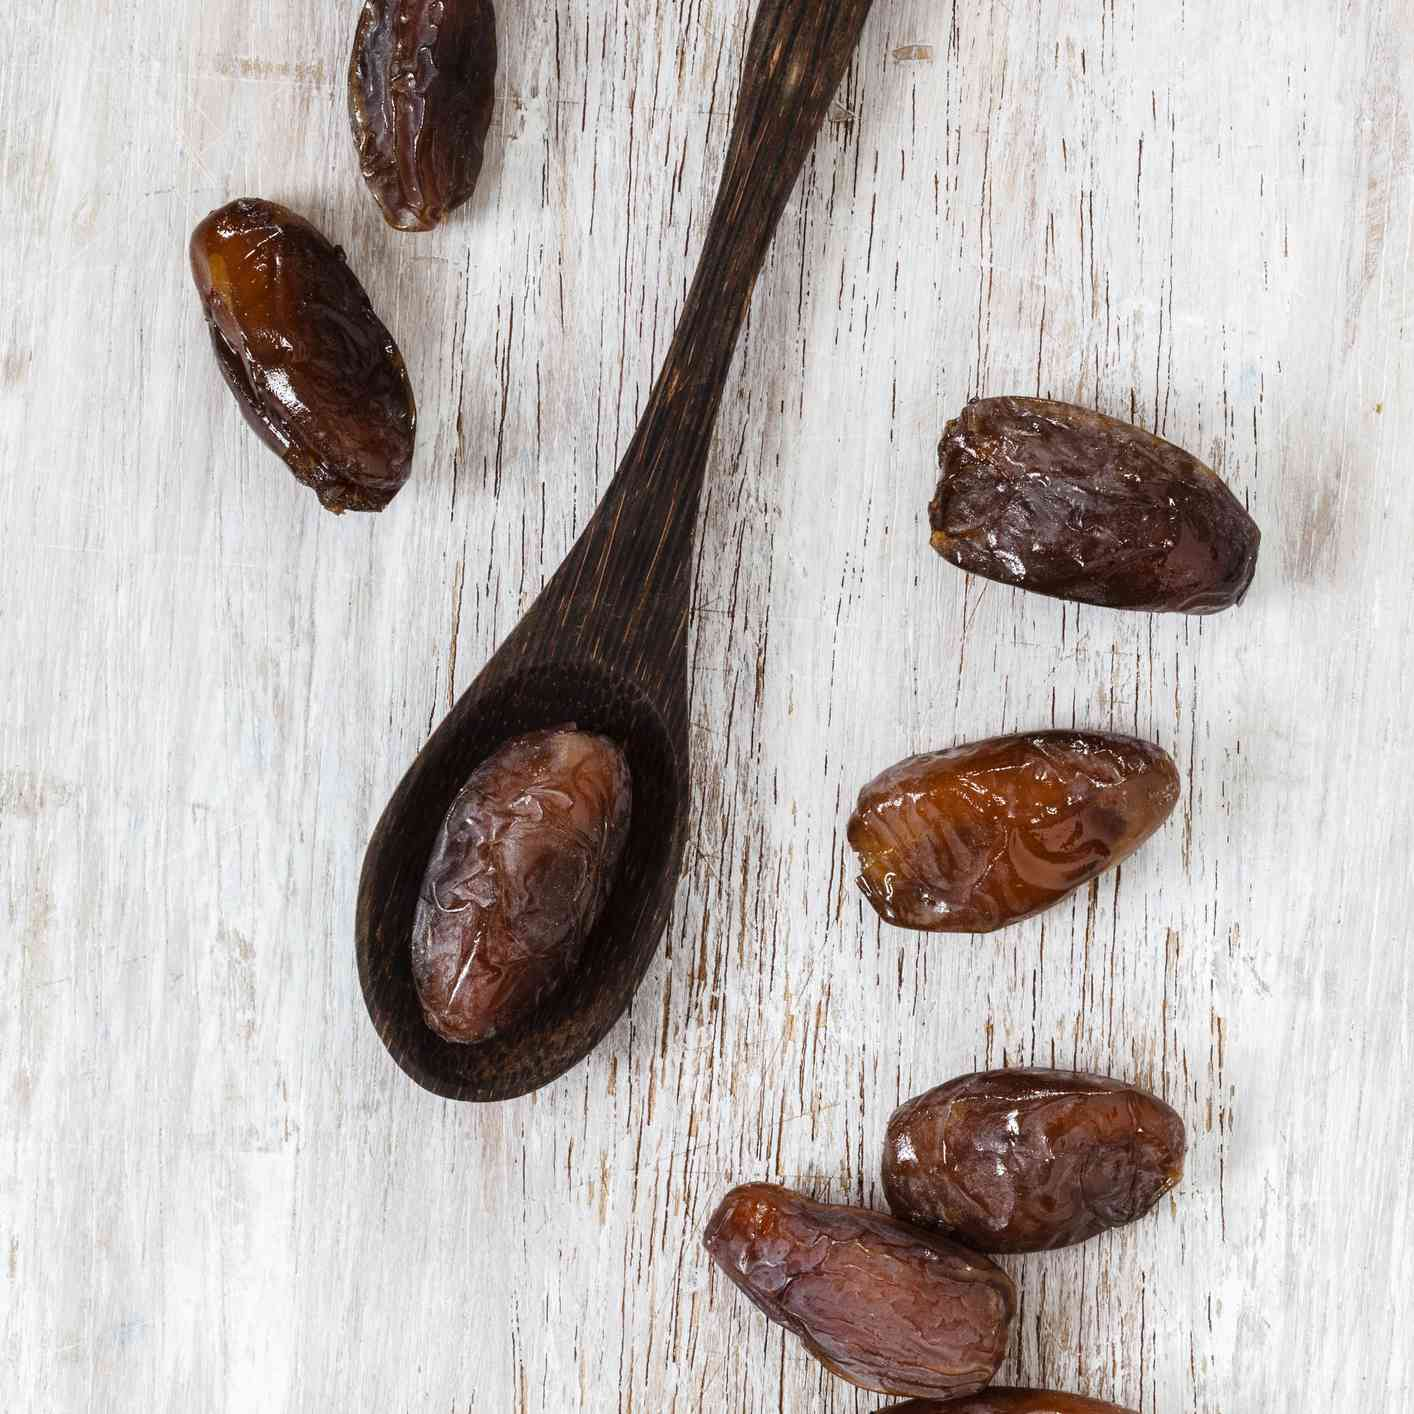 Dates and a wooden spoon